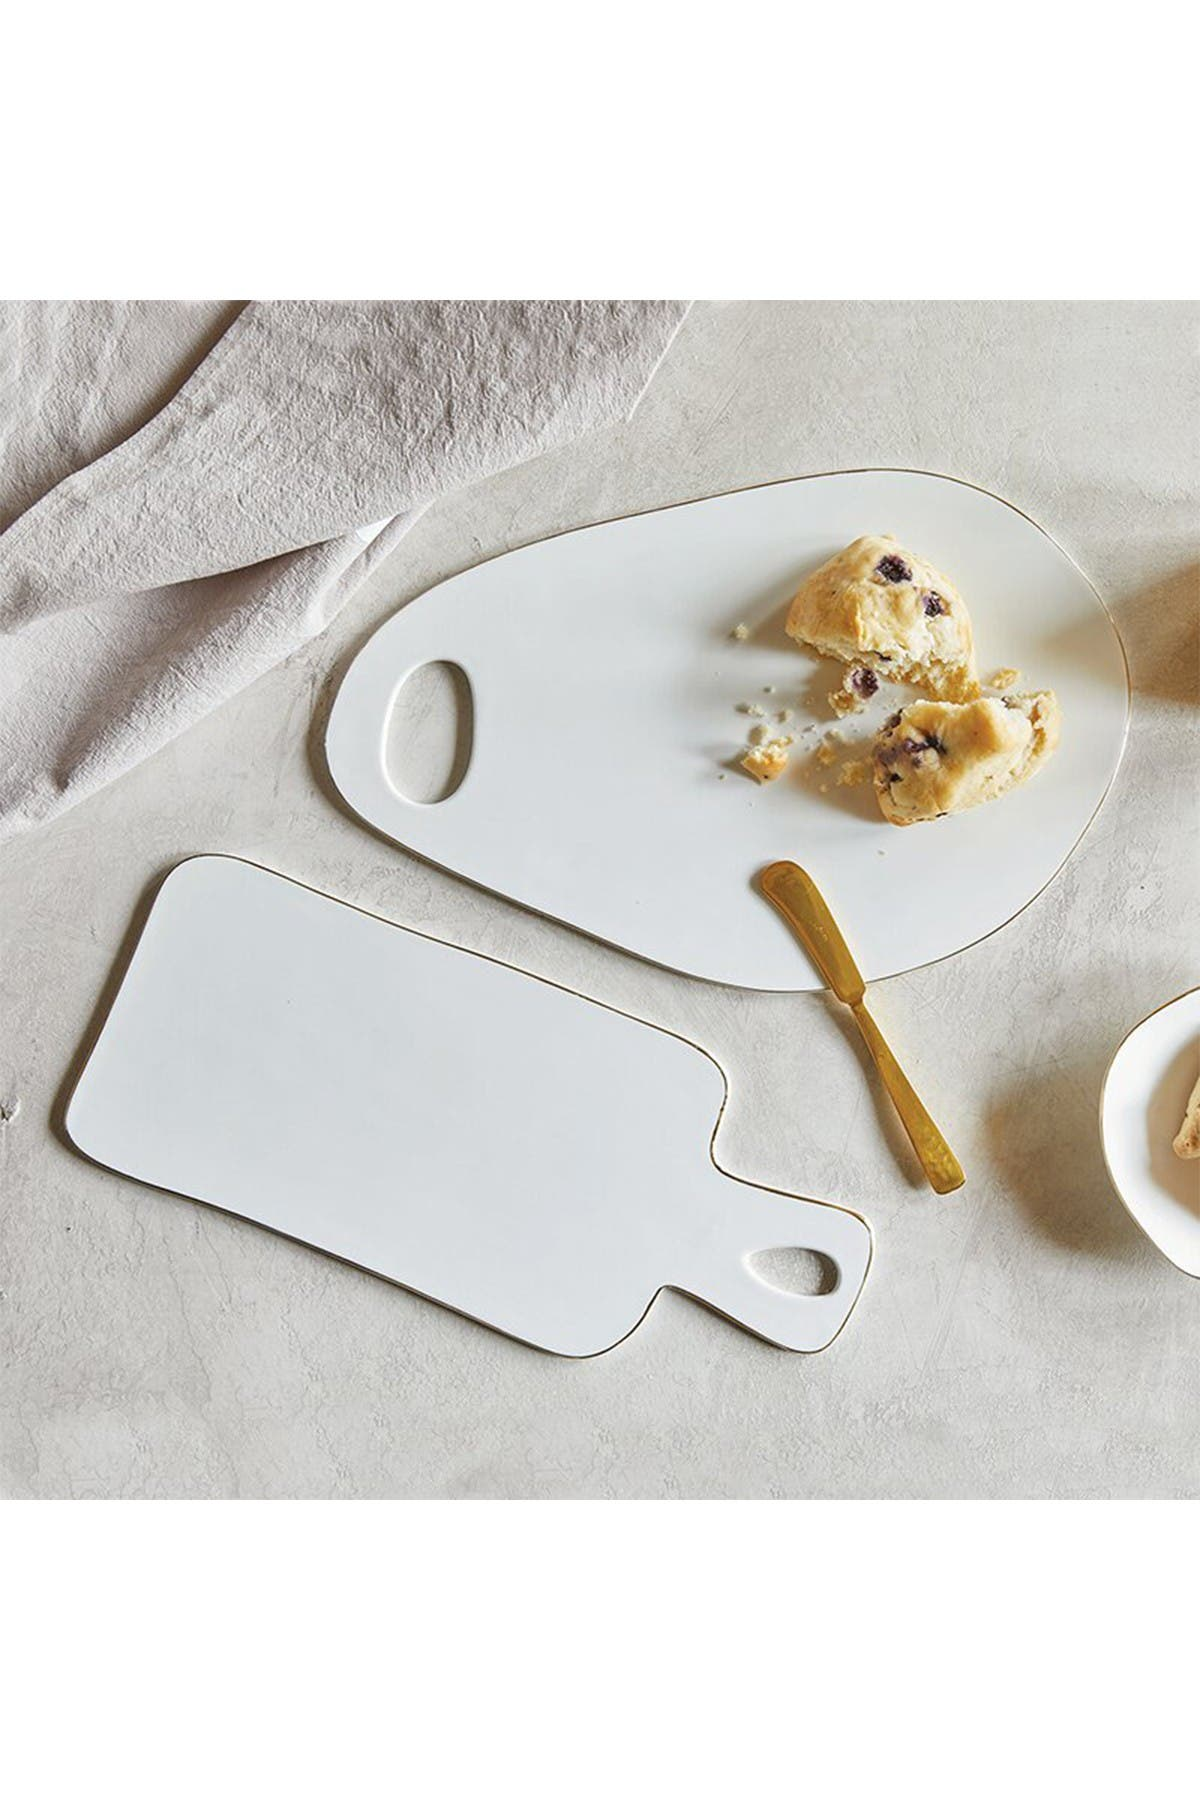 CREATIVE BRANDS Oval Cheese Tray